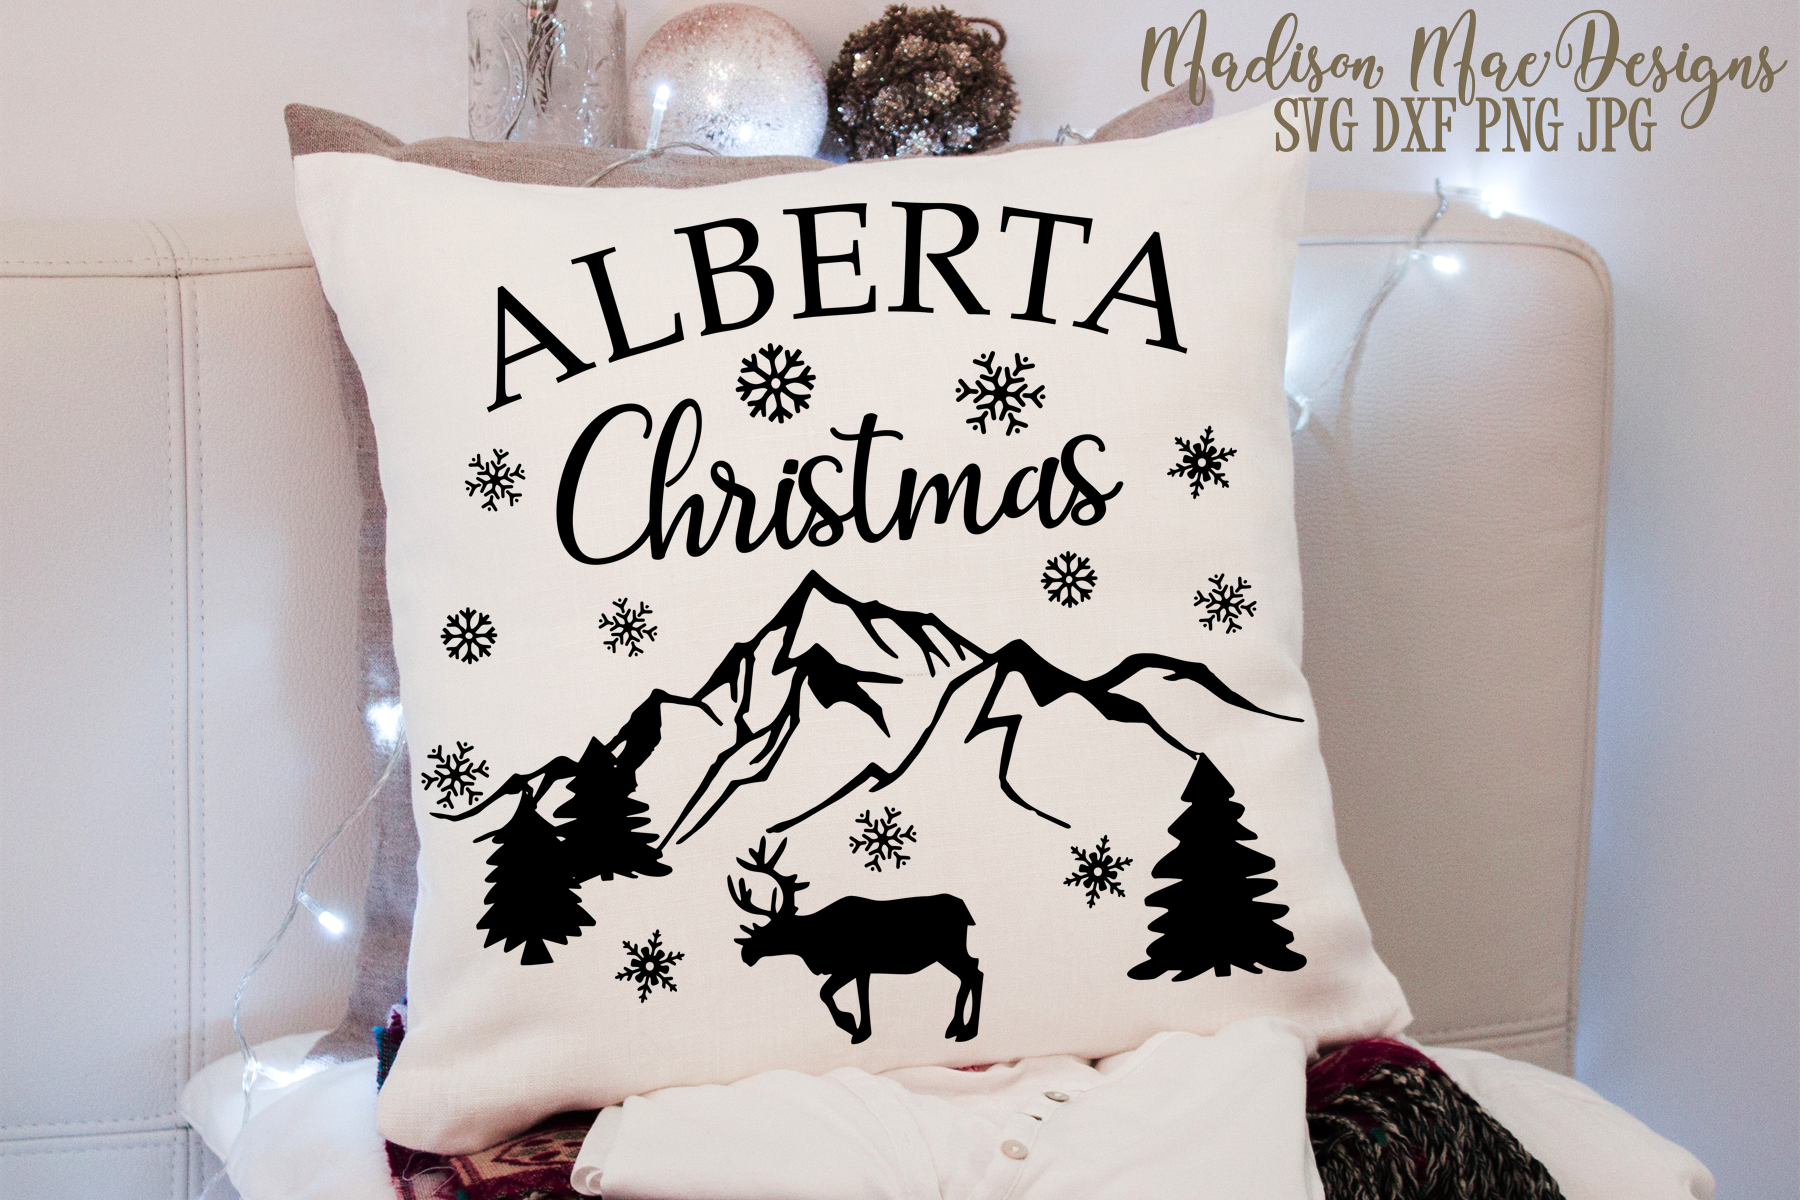 Alberta Christmas SVG, Christmas Cut File example image 2